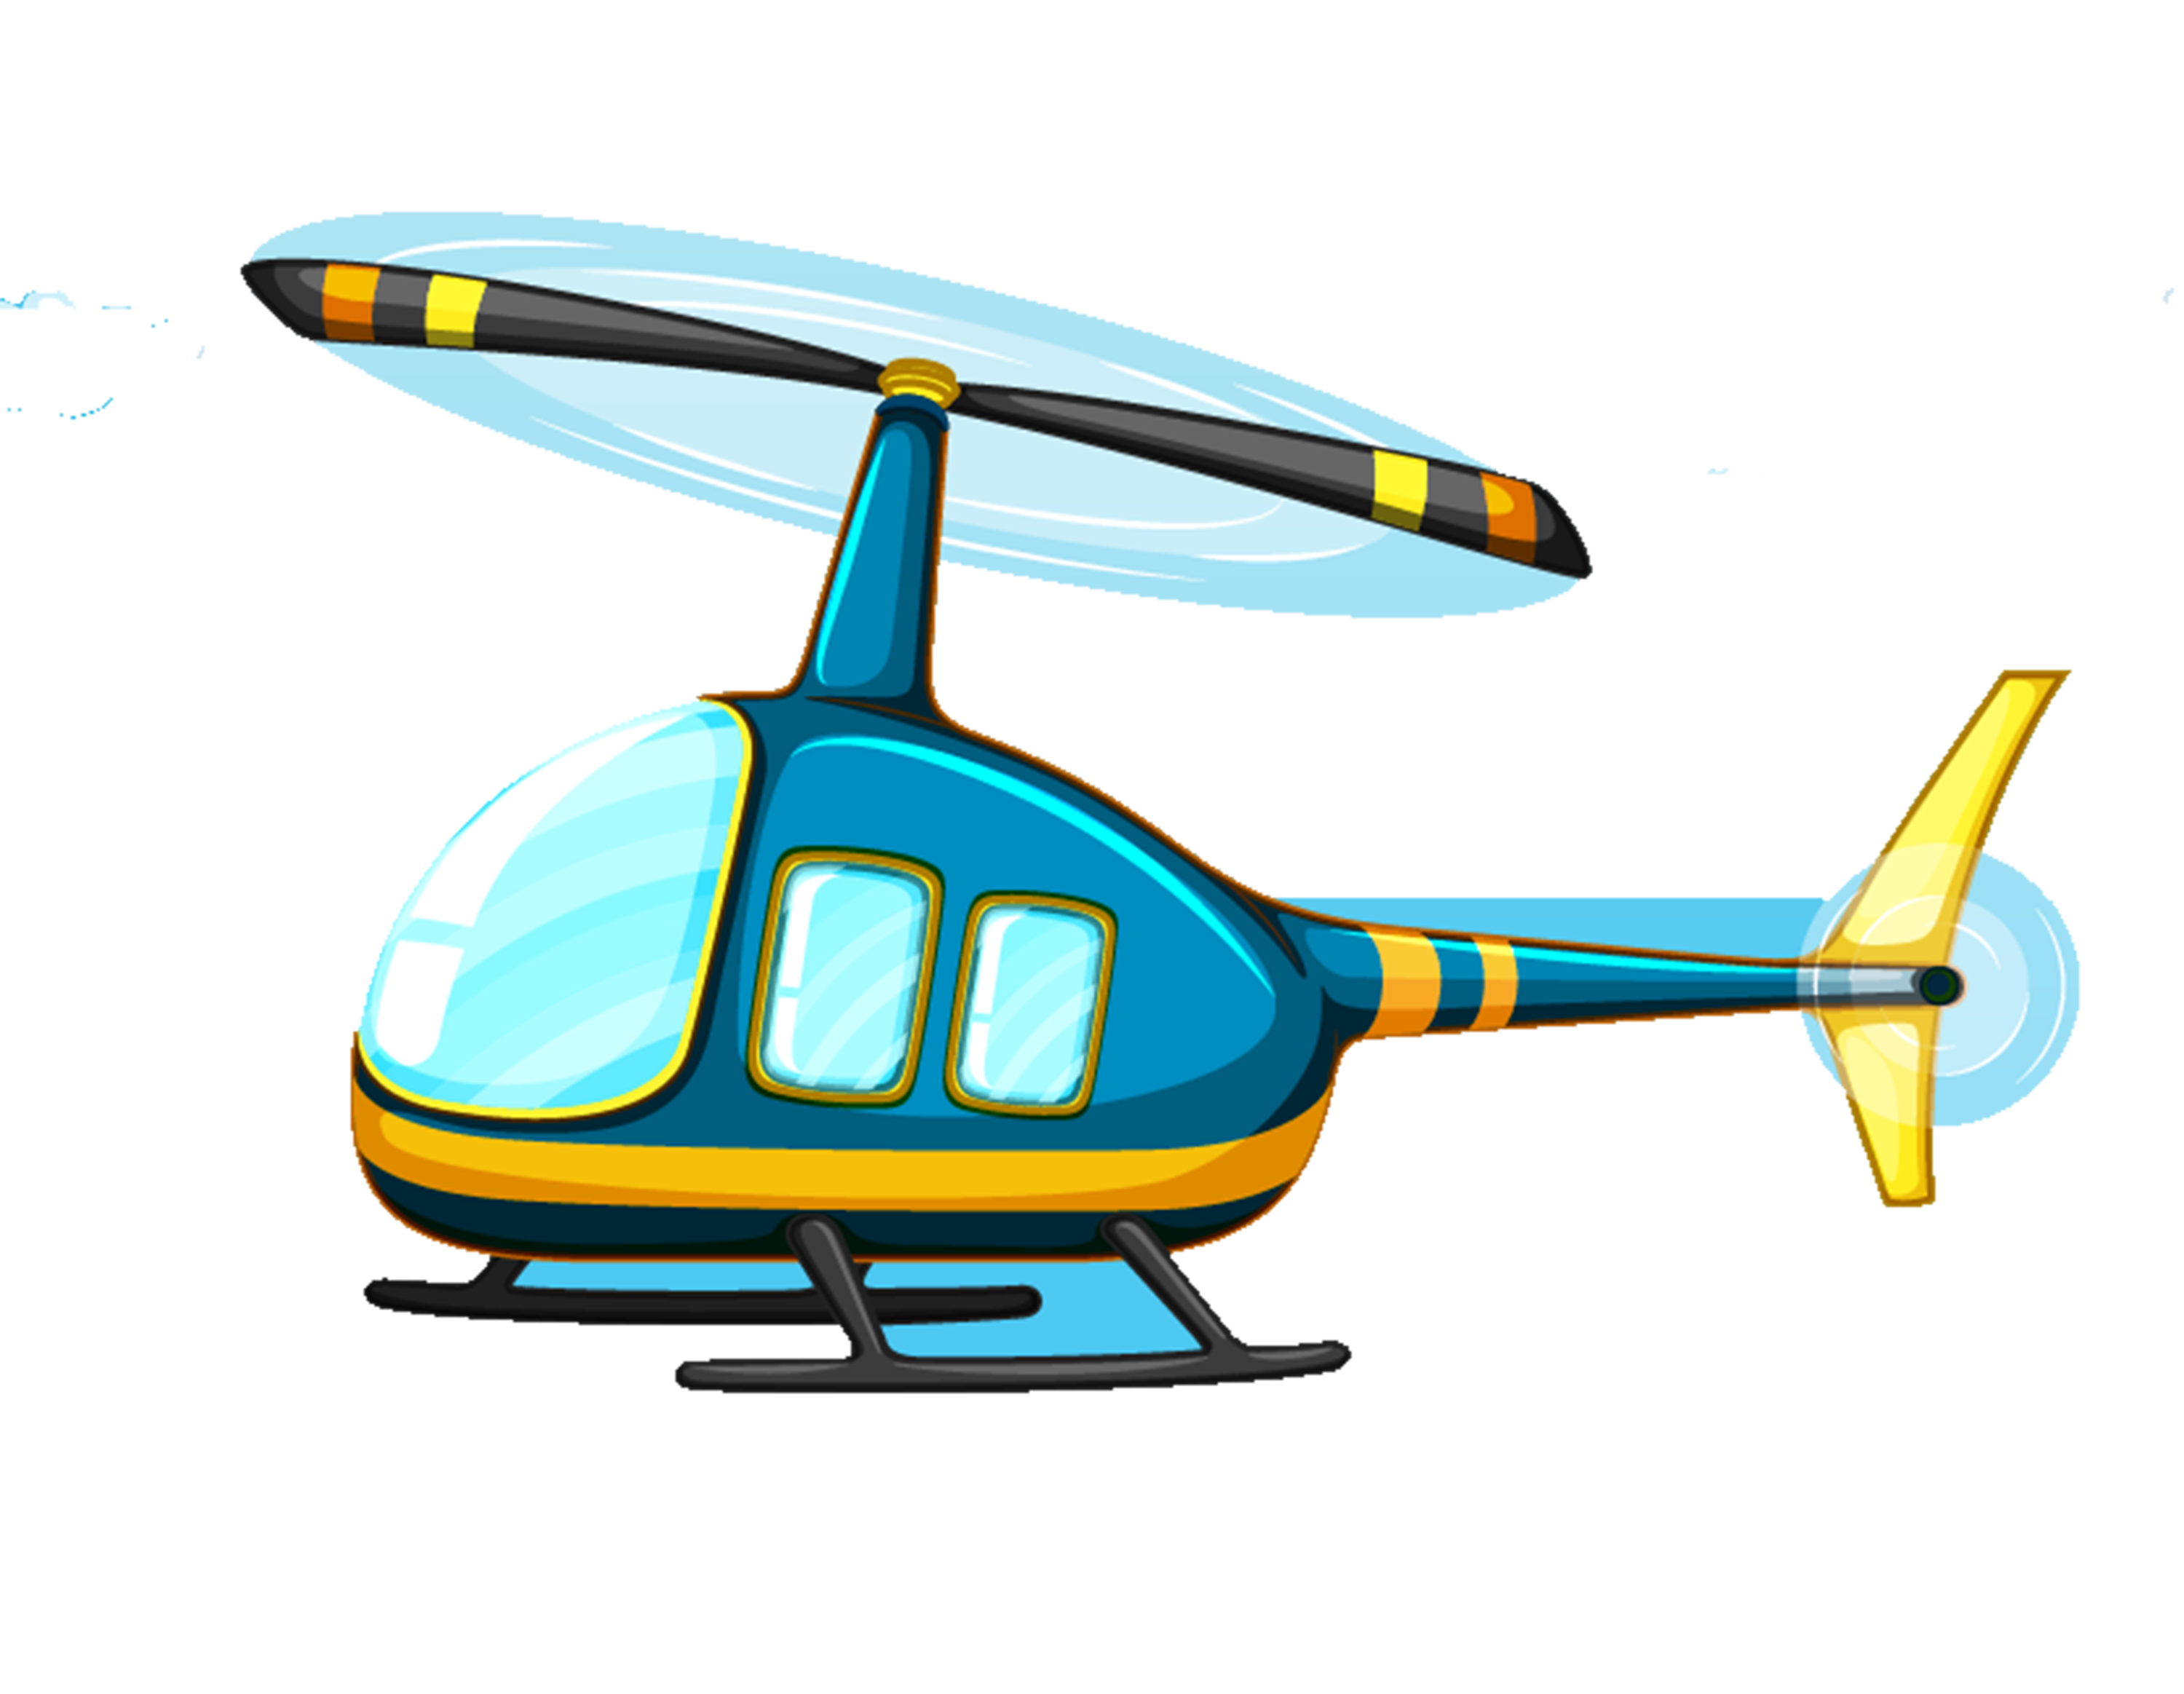 Flight royalty free illustration. Helicopter clipart yellow helicopter